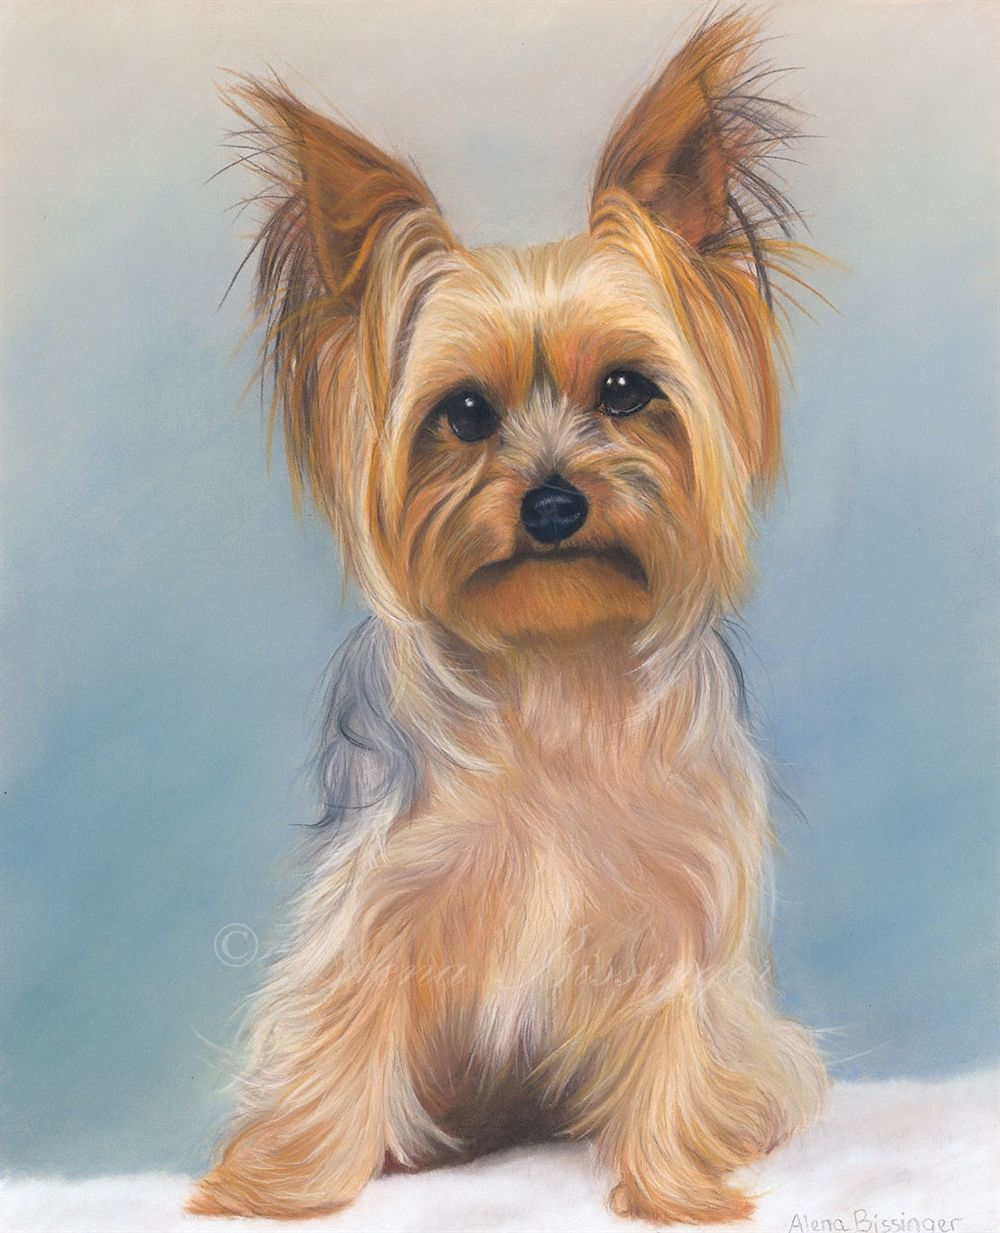 Yorkshire Pudding Pastel Pencil Portrait Of A Yorkshire Terrier By Alena Bissinger Yorkie Painting Dog Paintings Dog Portraits